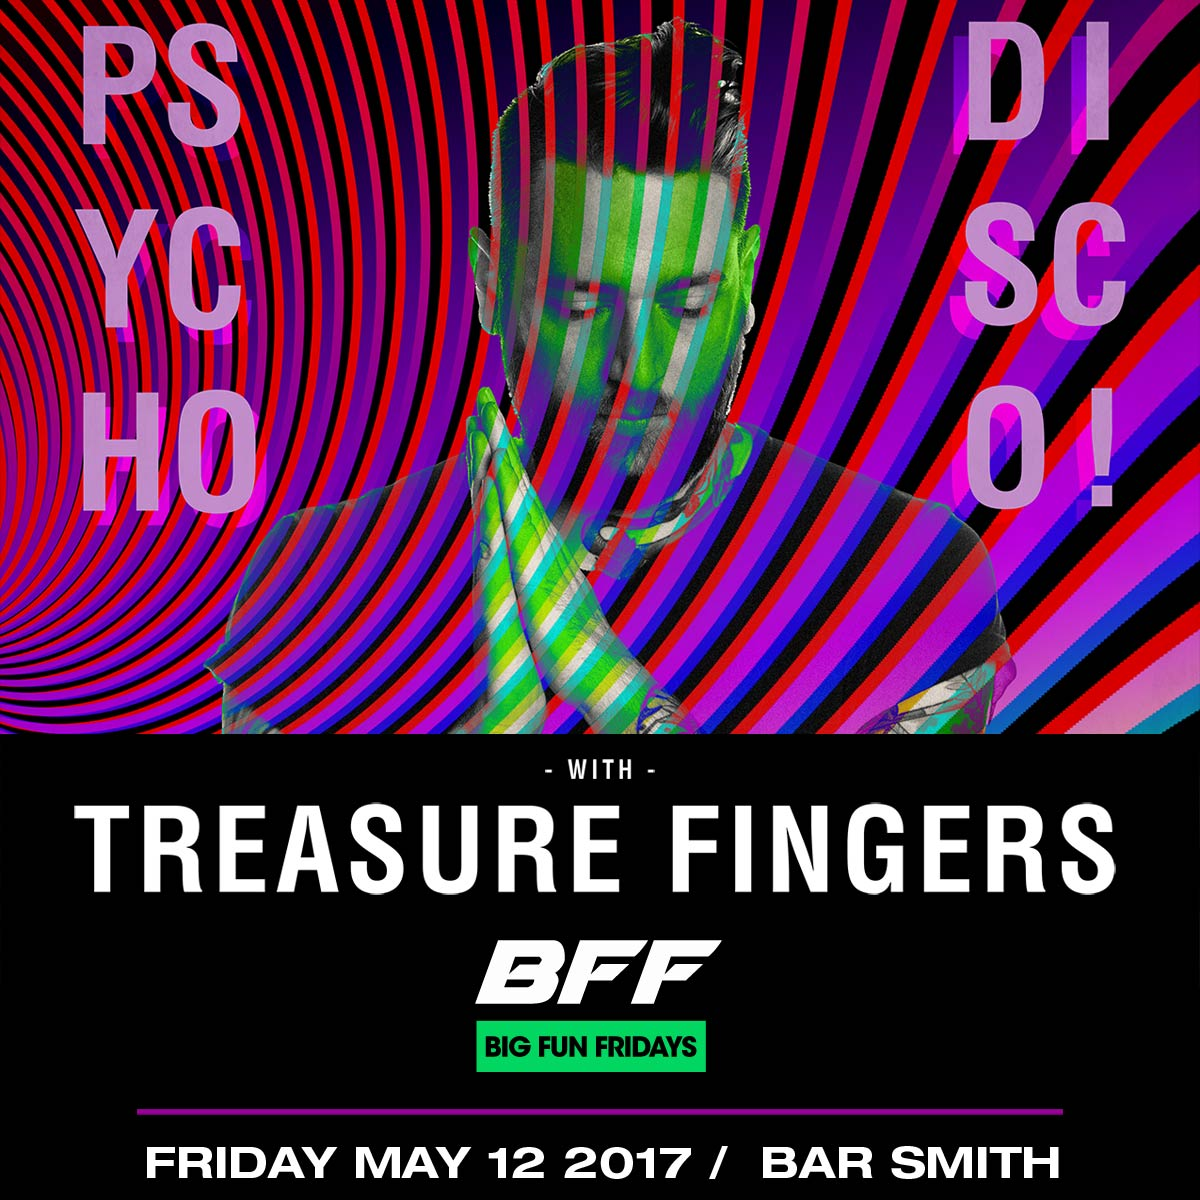 Flyer for Treasure Fingers - BFF